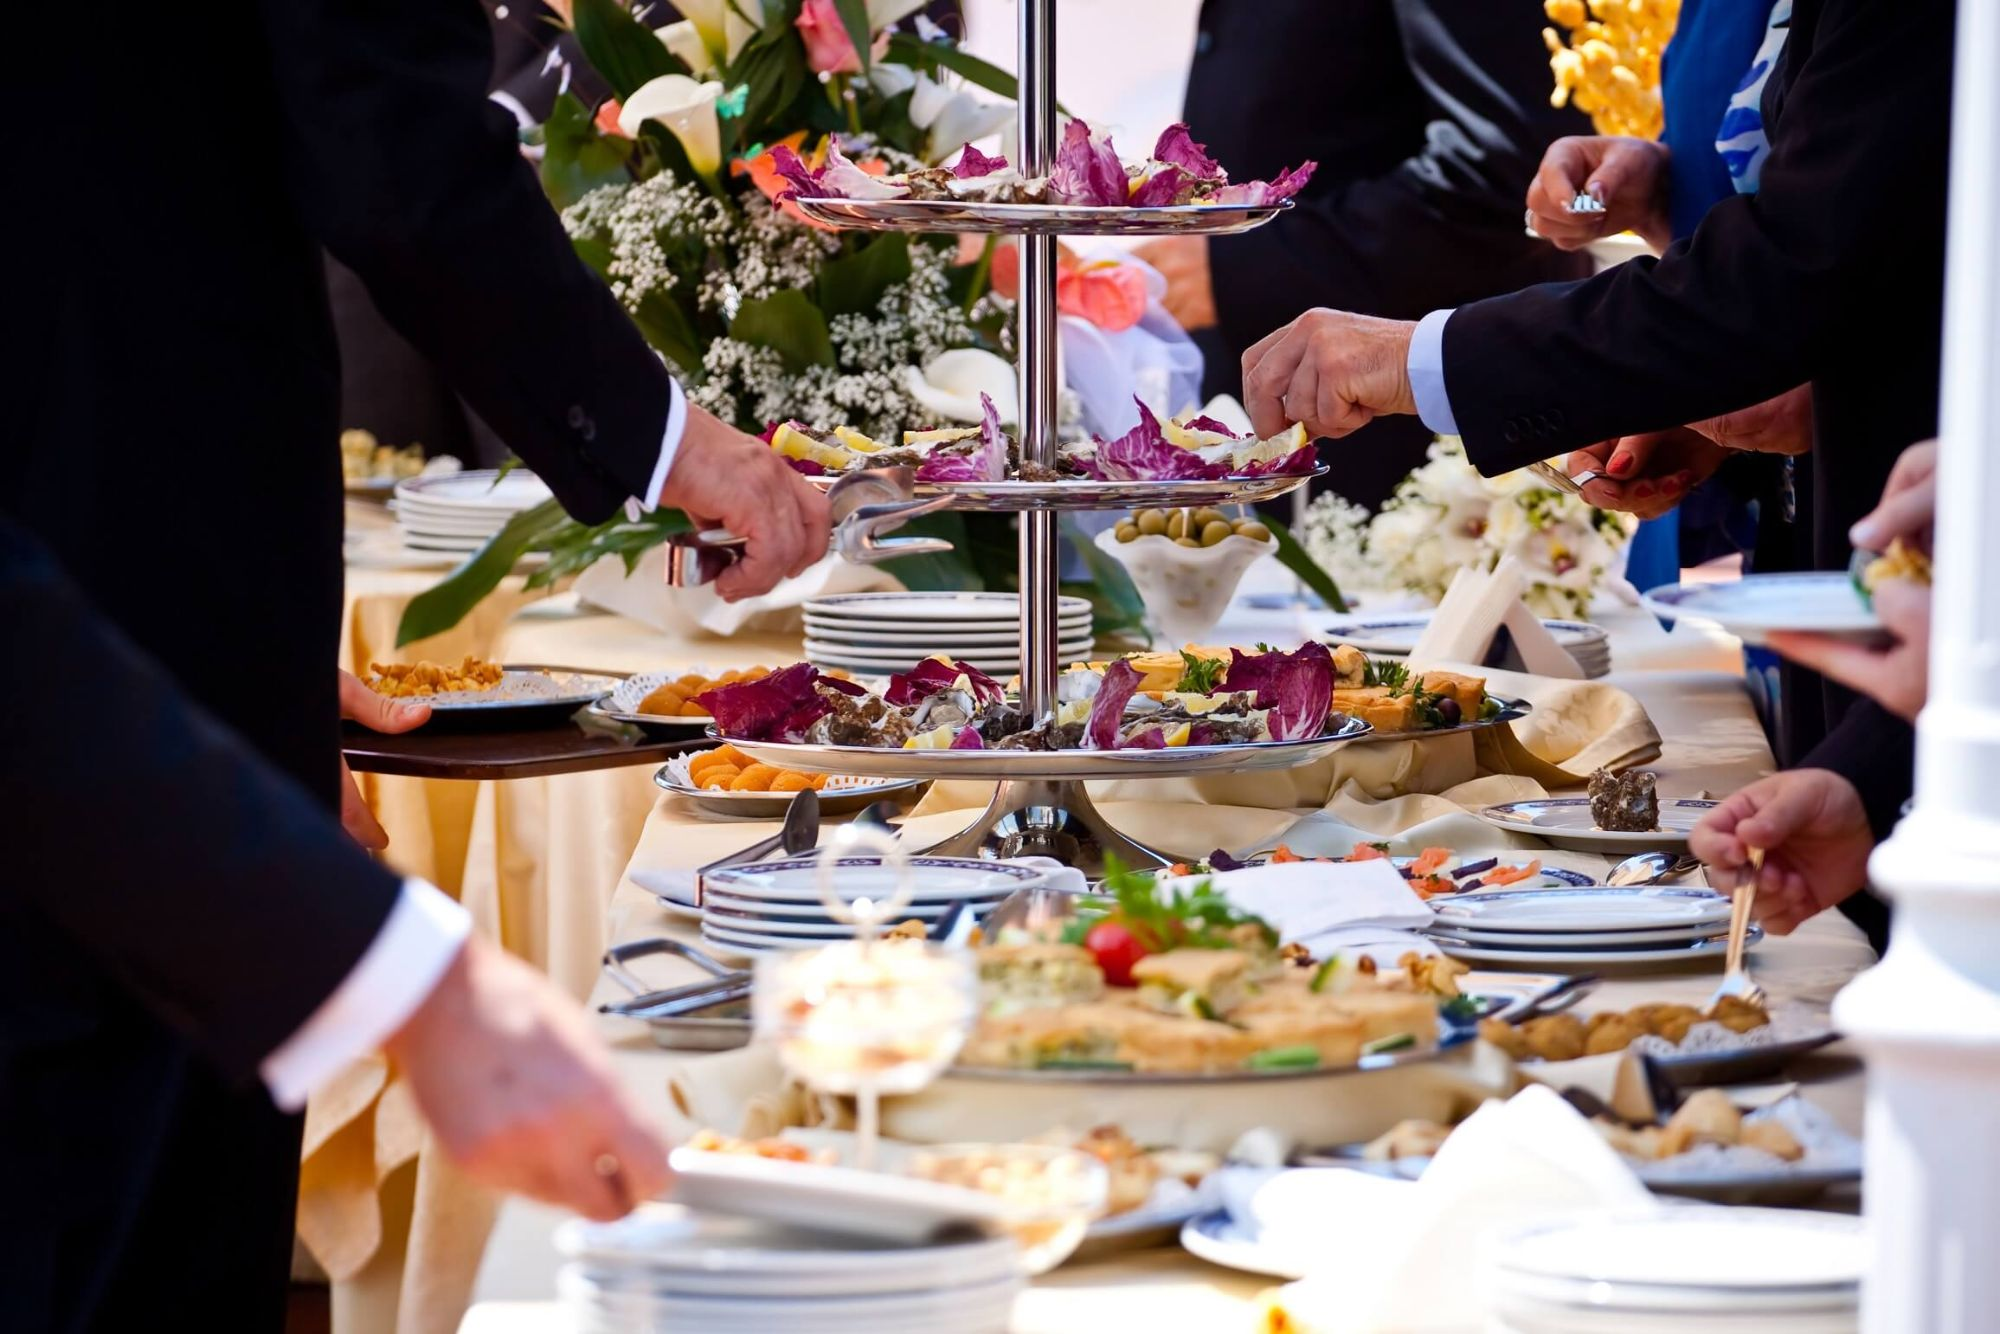 Charter 1227 - Wedding Catering in Wiltshire - Love That Wedding!